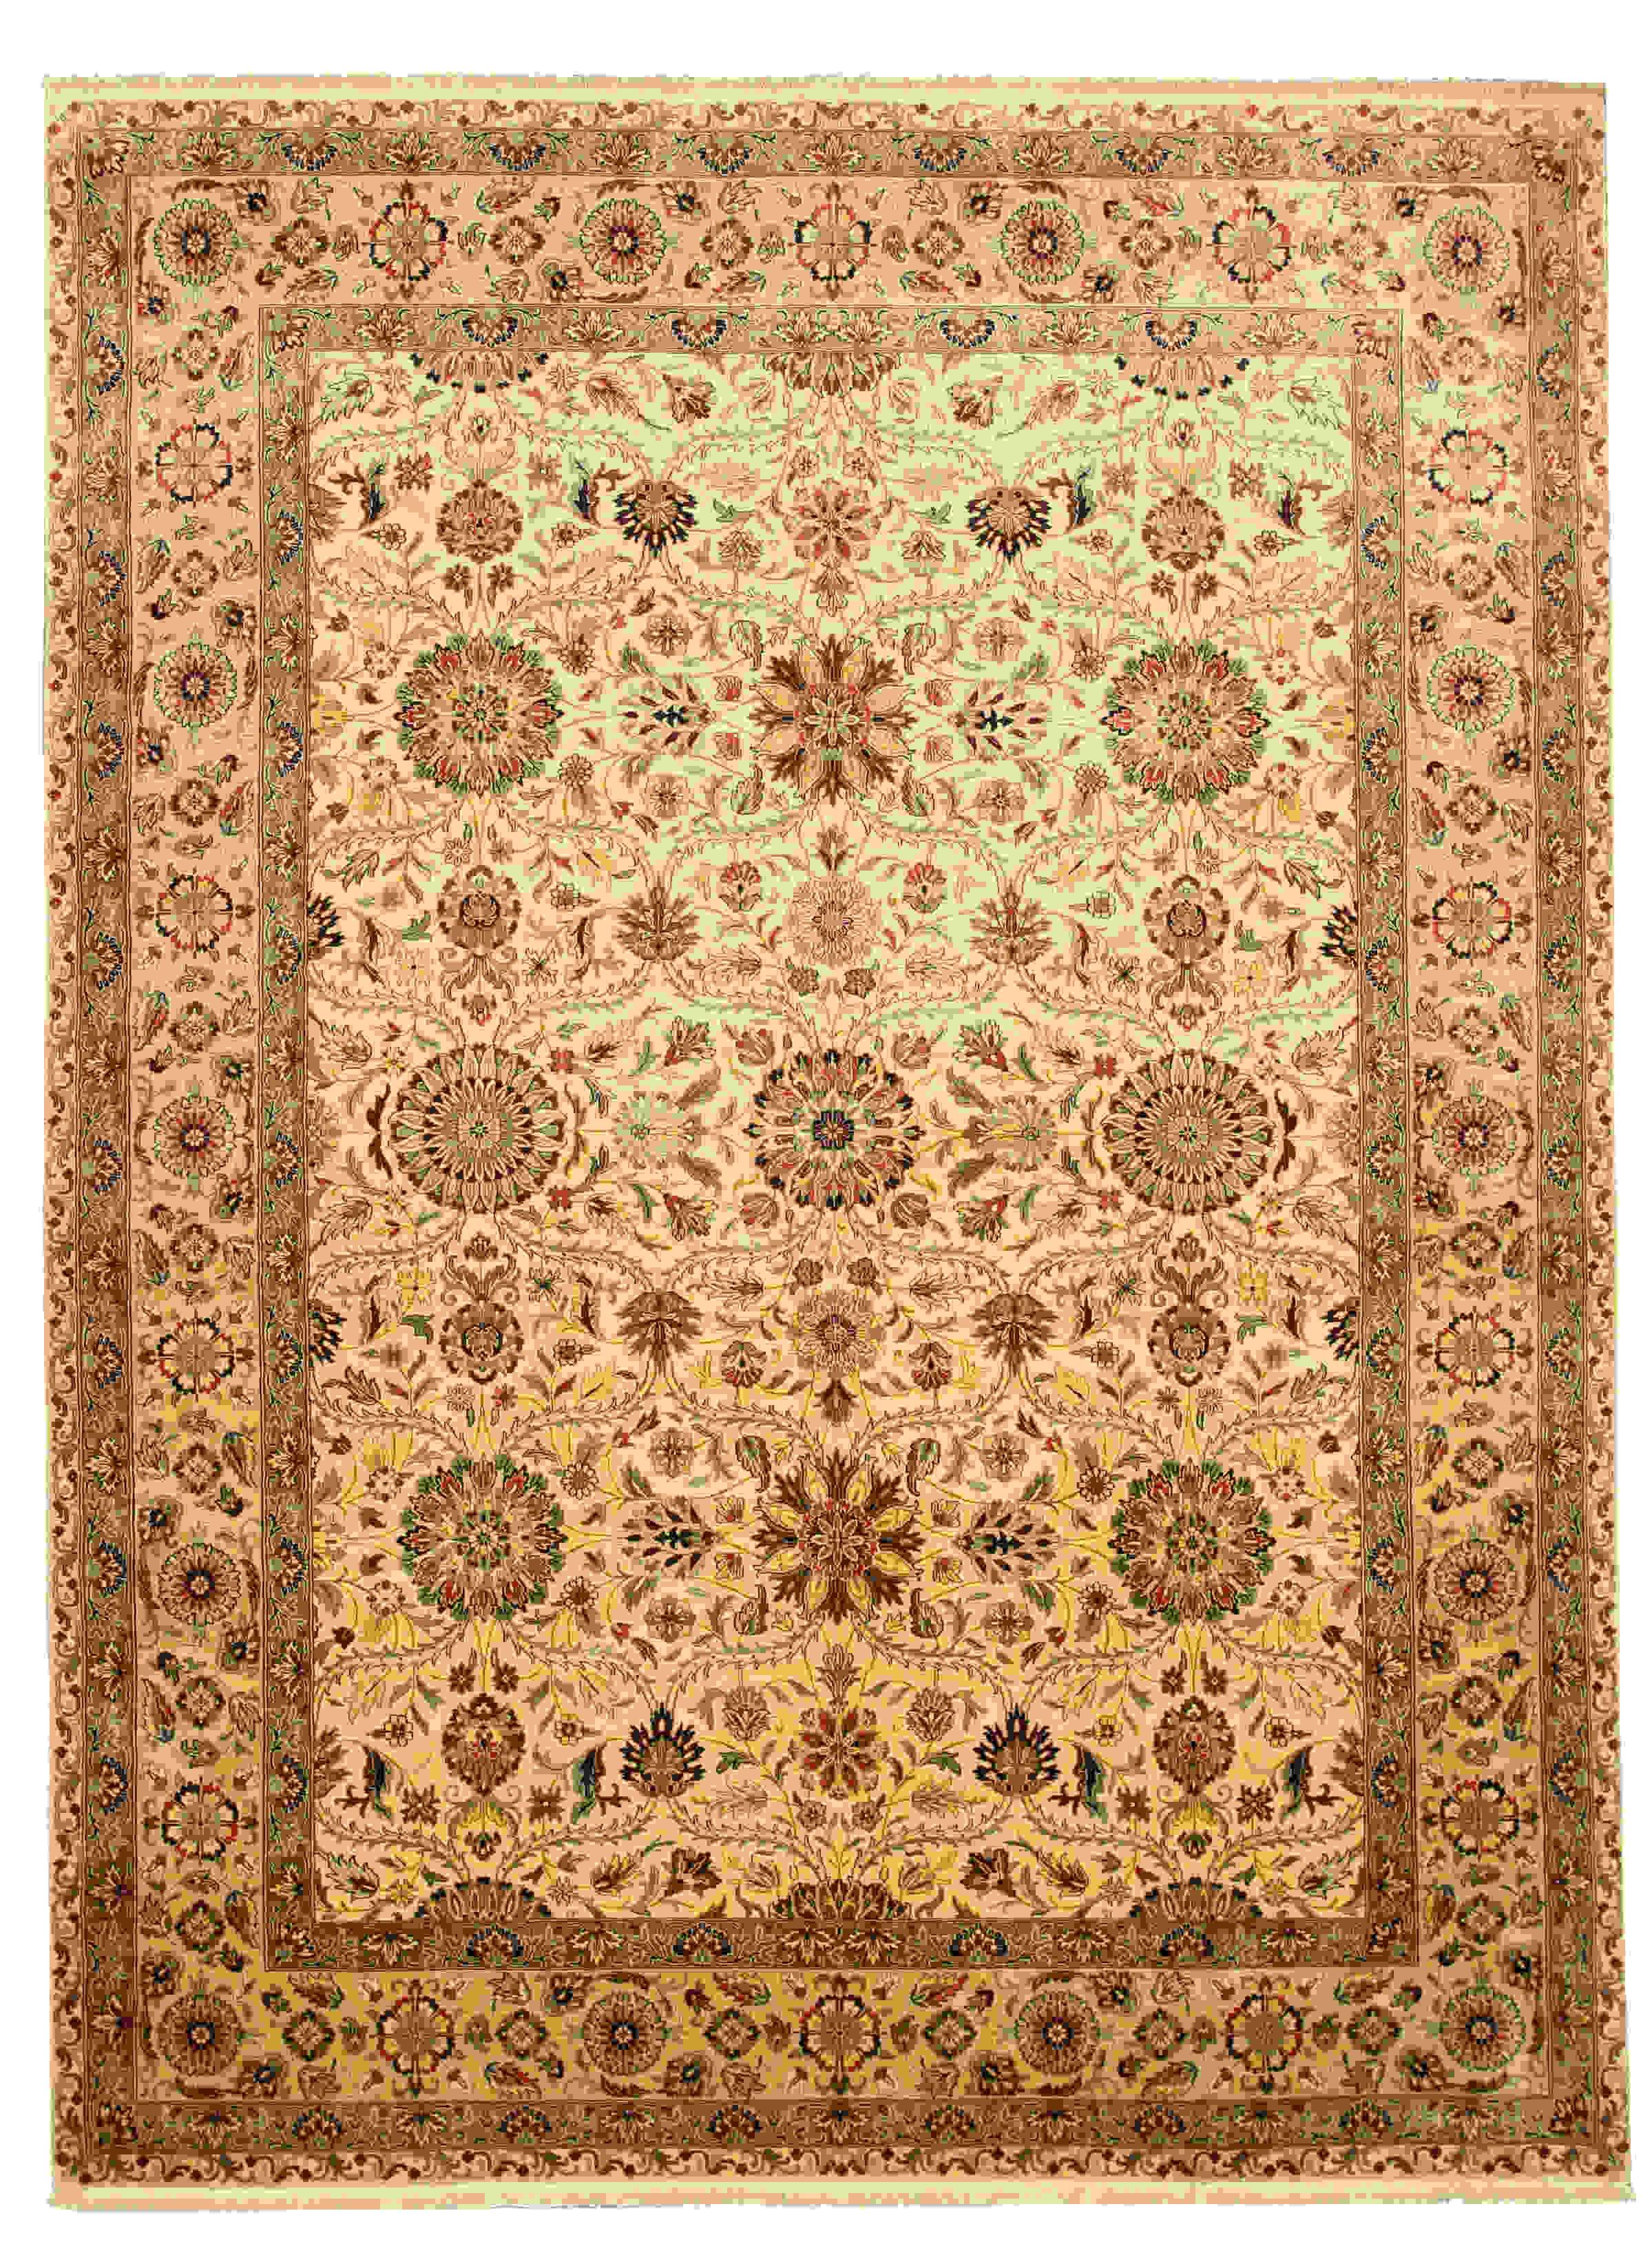 Eorc 9004 Ivory Hand Knotted New Zealand Wool Tabriz Rug